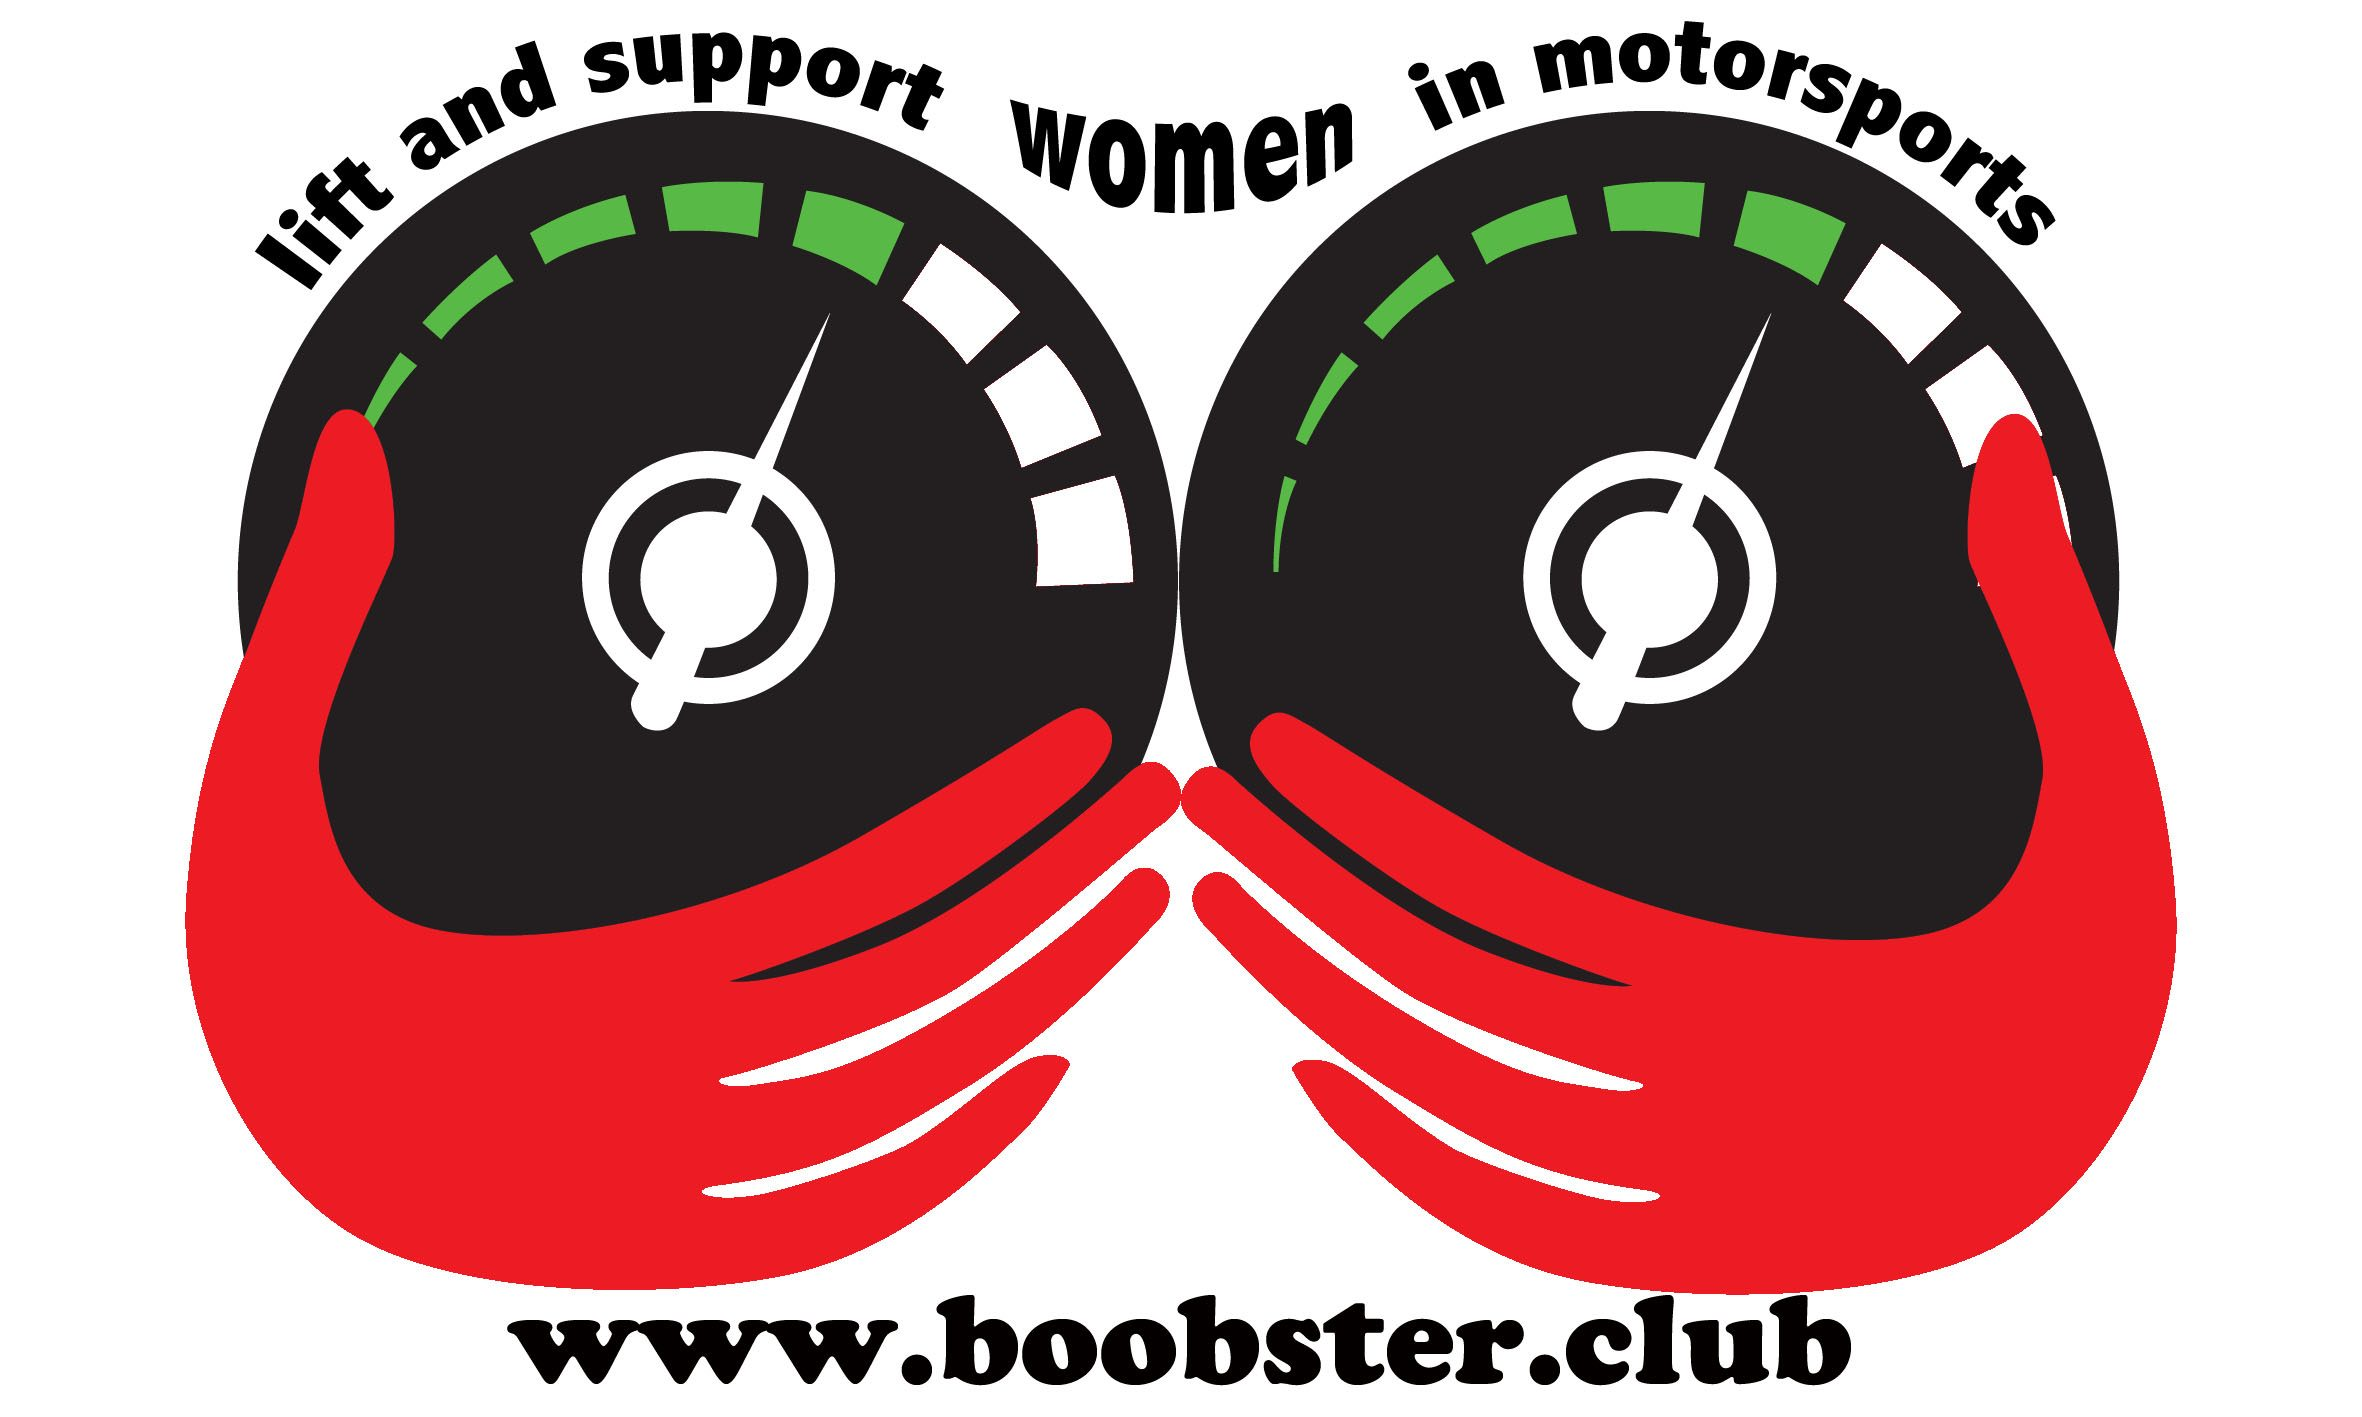 Boobster Club